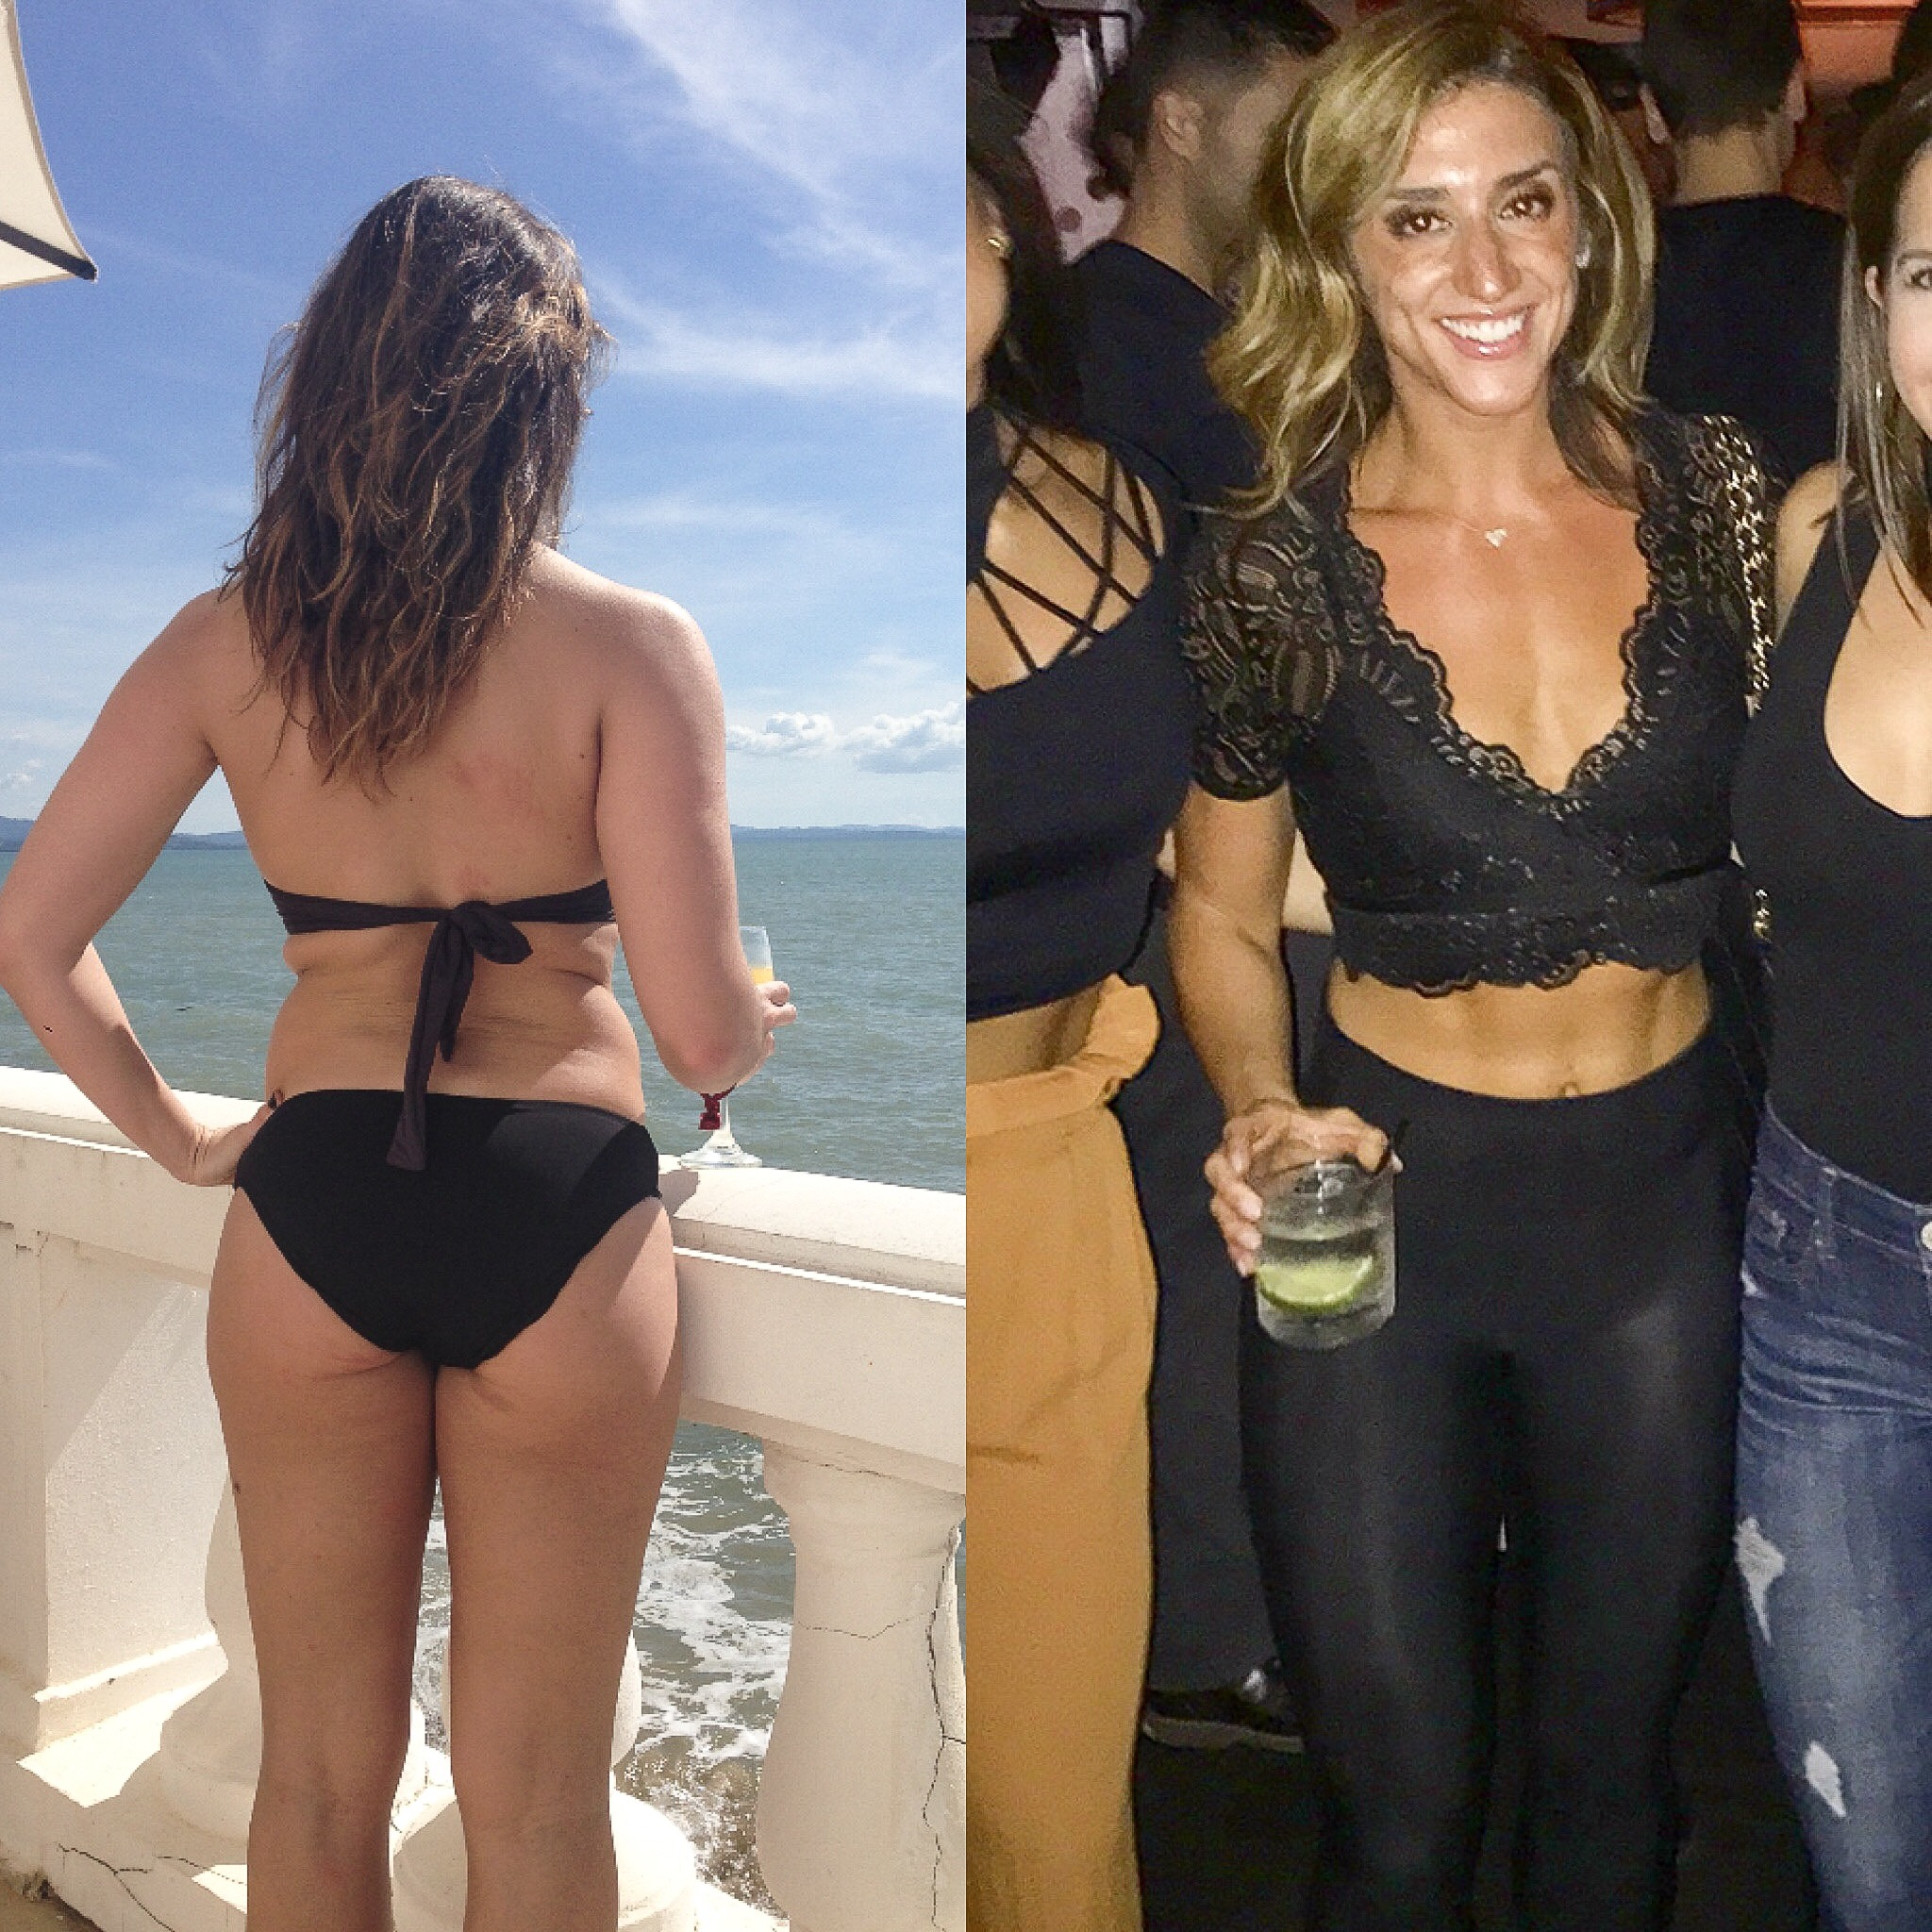 2014 --> 2017    Weight difference: 5 pounds! (that right there should tell you how little weight matters!) holding drinks in both pictures :/ LOL - balance :)